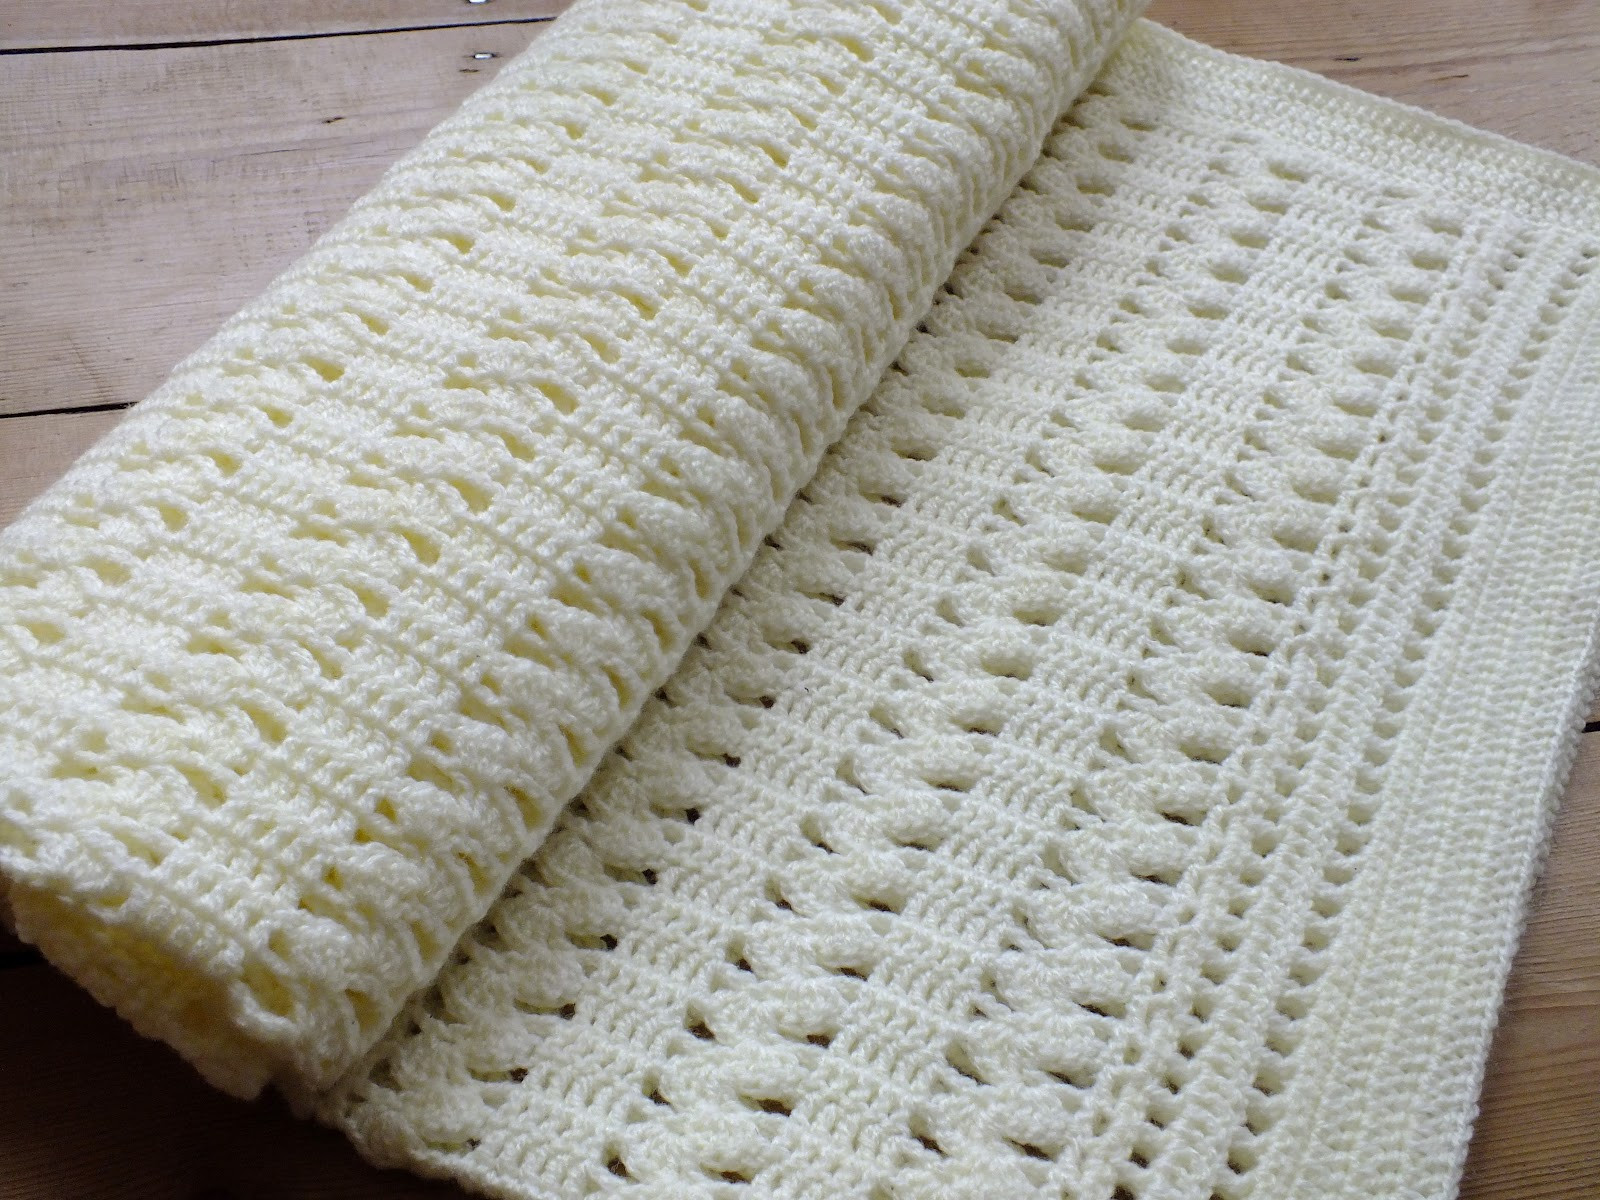 Best Of Hanjancrafts Gentle Zigzag Baby Blanket Shell Instructions Crochet Shell Blanket Of Lovely 40 Pictures Crochet Shell Blanket